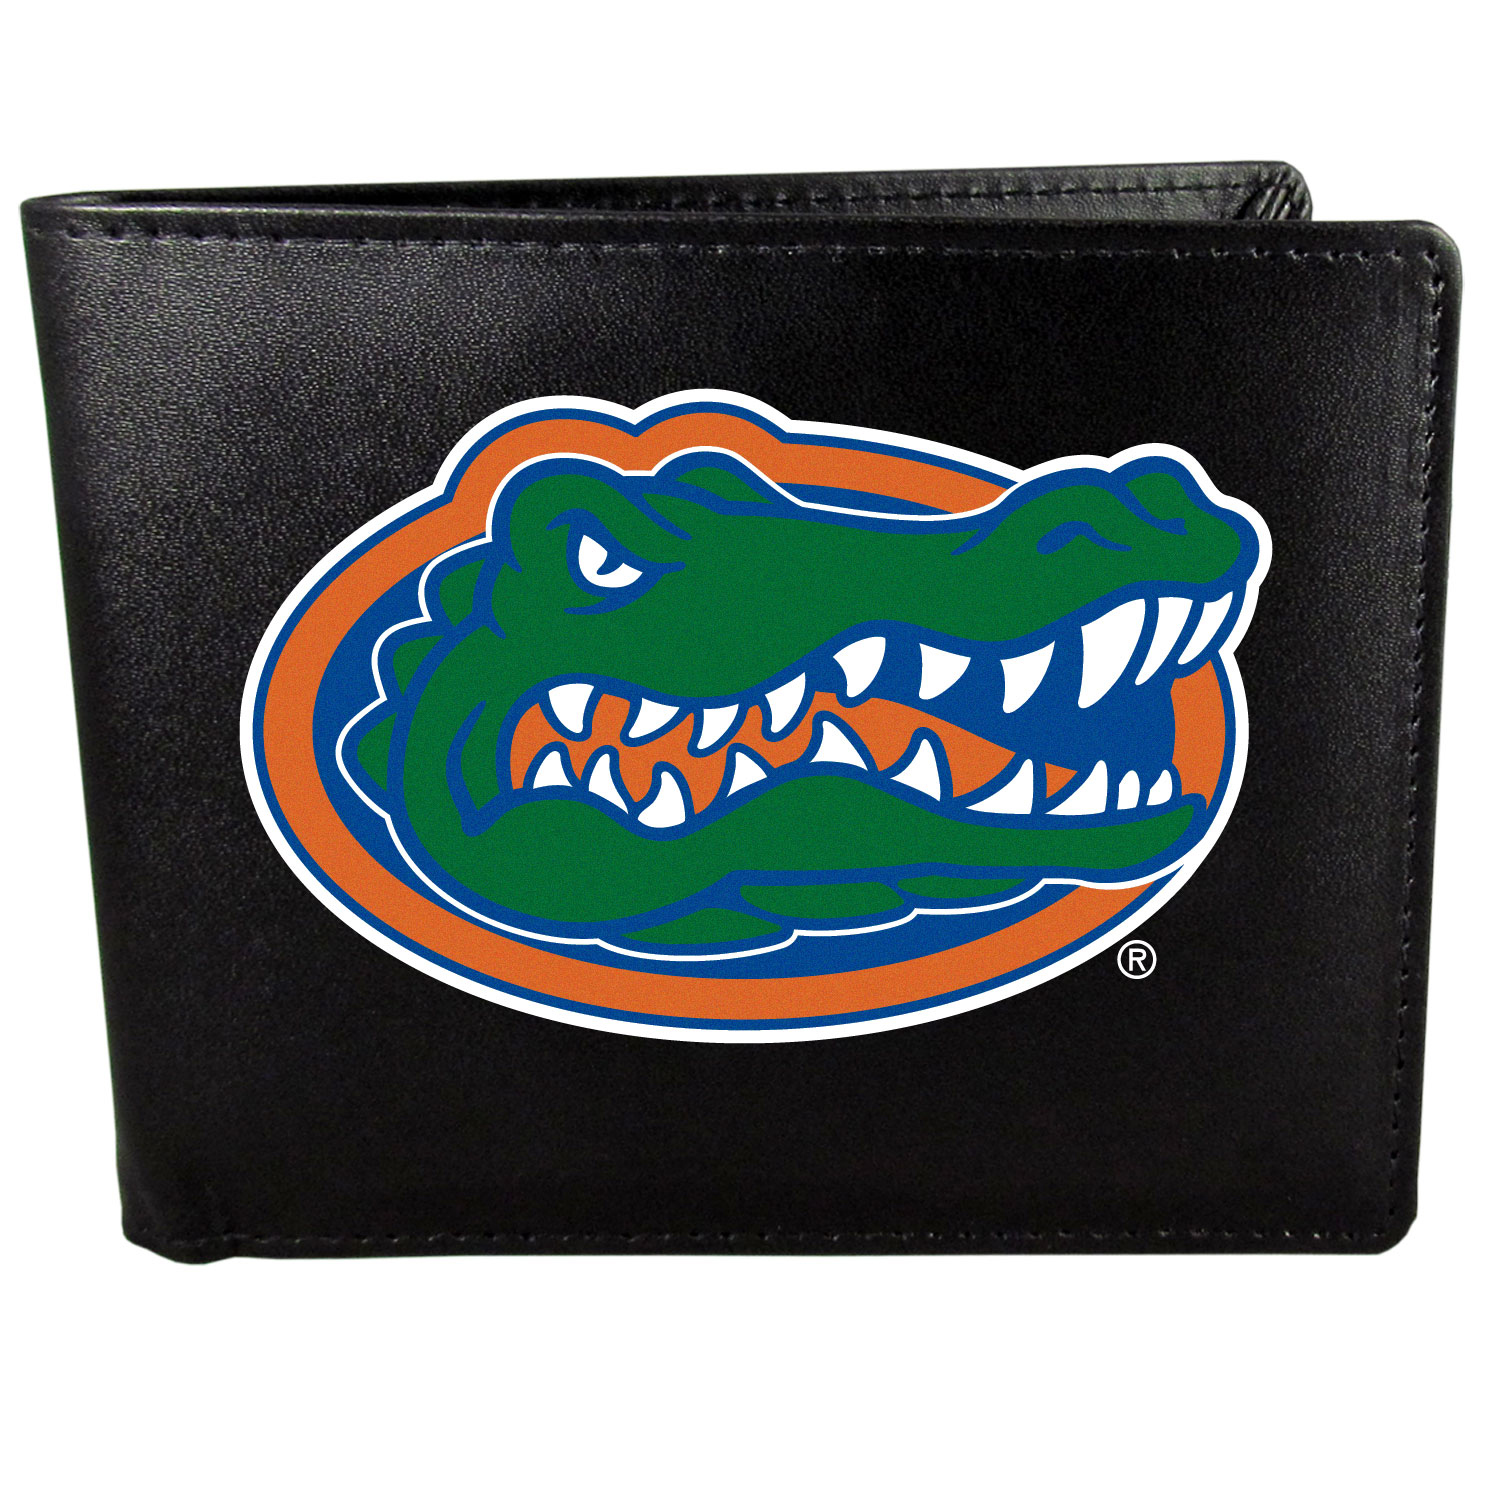 Florida Gators Leather Bi-fold Wallet, Large Logo - Our classic fine leather bi-fold wallet is meticulously crafted with genuine leather that will age beautifully so you will have a quality wallet for years to come. The wallet opens to a large, billfold pocket and numerous credit card slots and has a convenient windowed ID slot. The front of the wallet features an extra large Florida Gators printed logo.